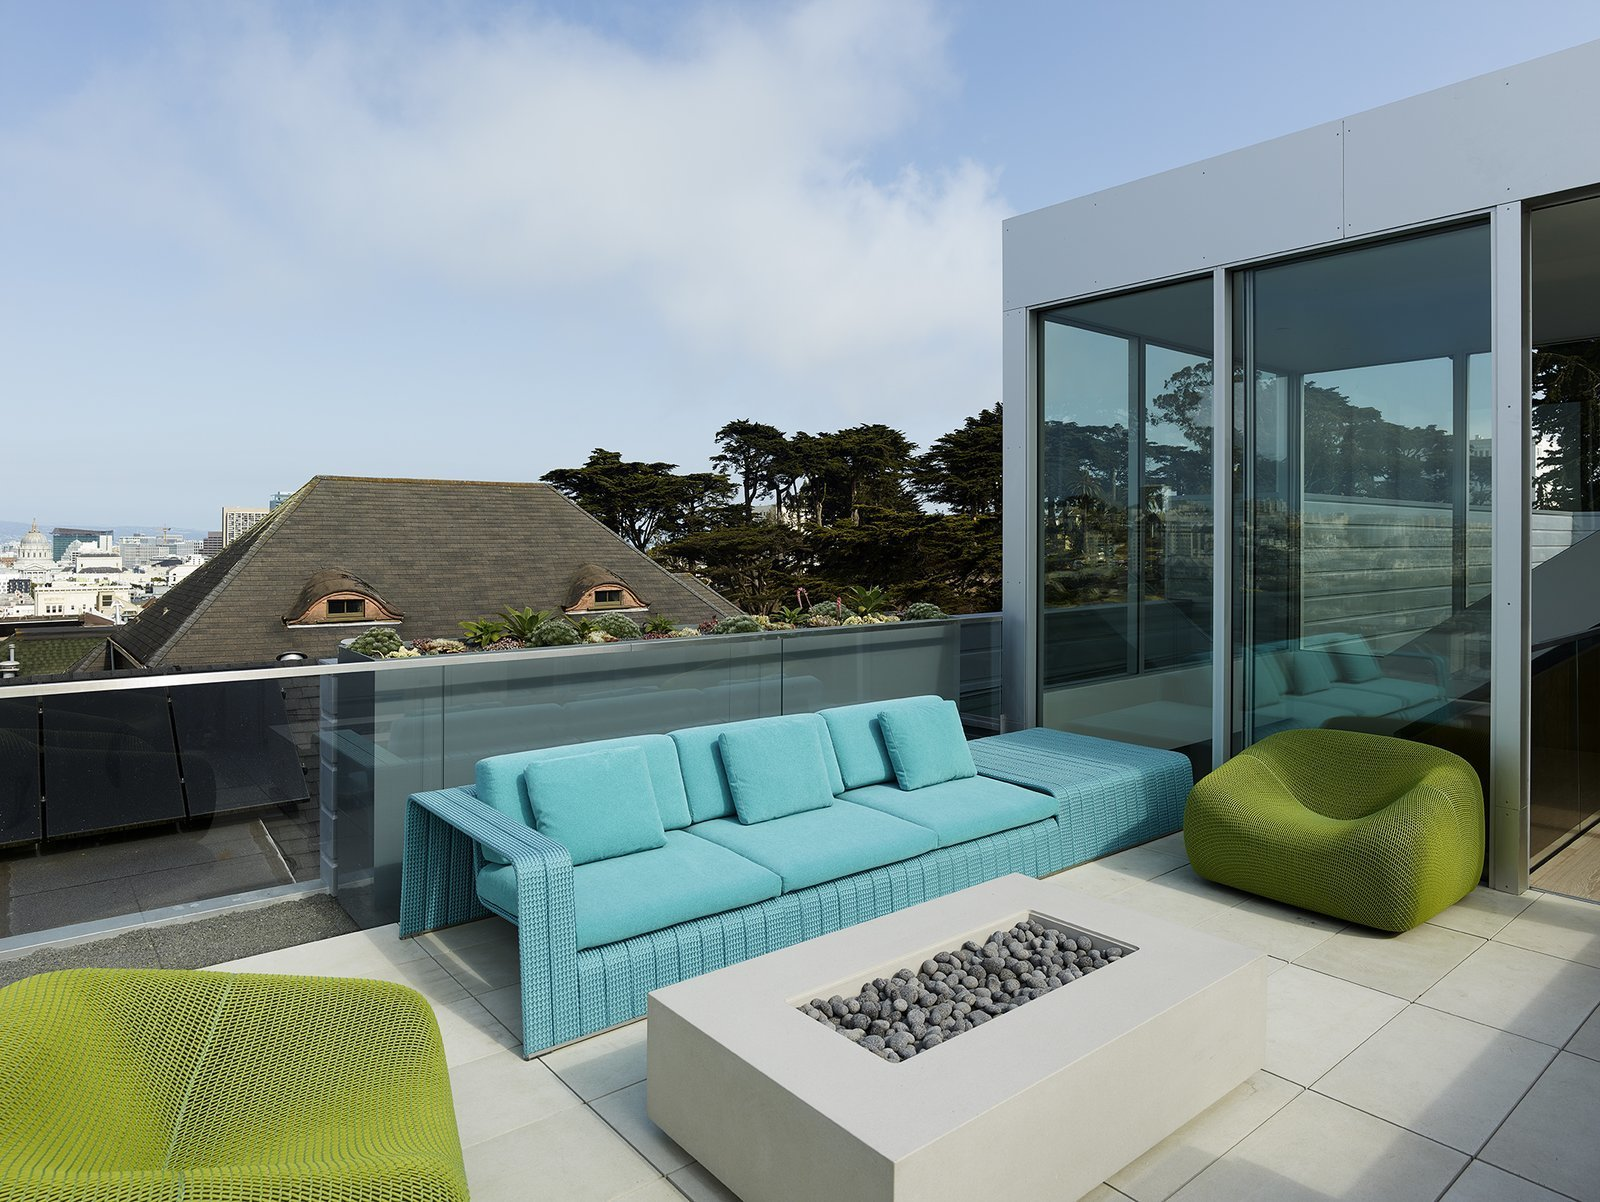 After: Alamo Square Residence roof top patio with short glass wall outdoor patio sofa and chairs with a rectangular outdoor firepit